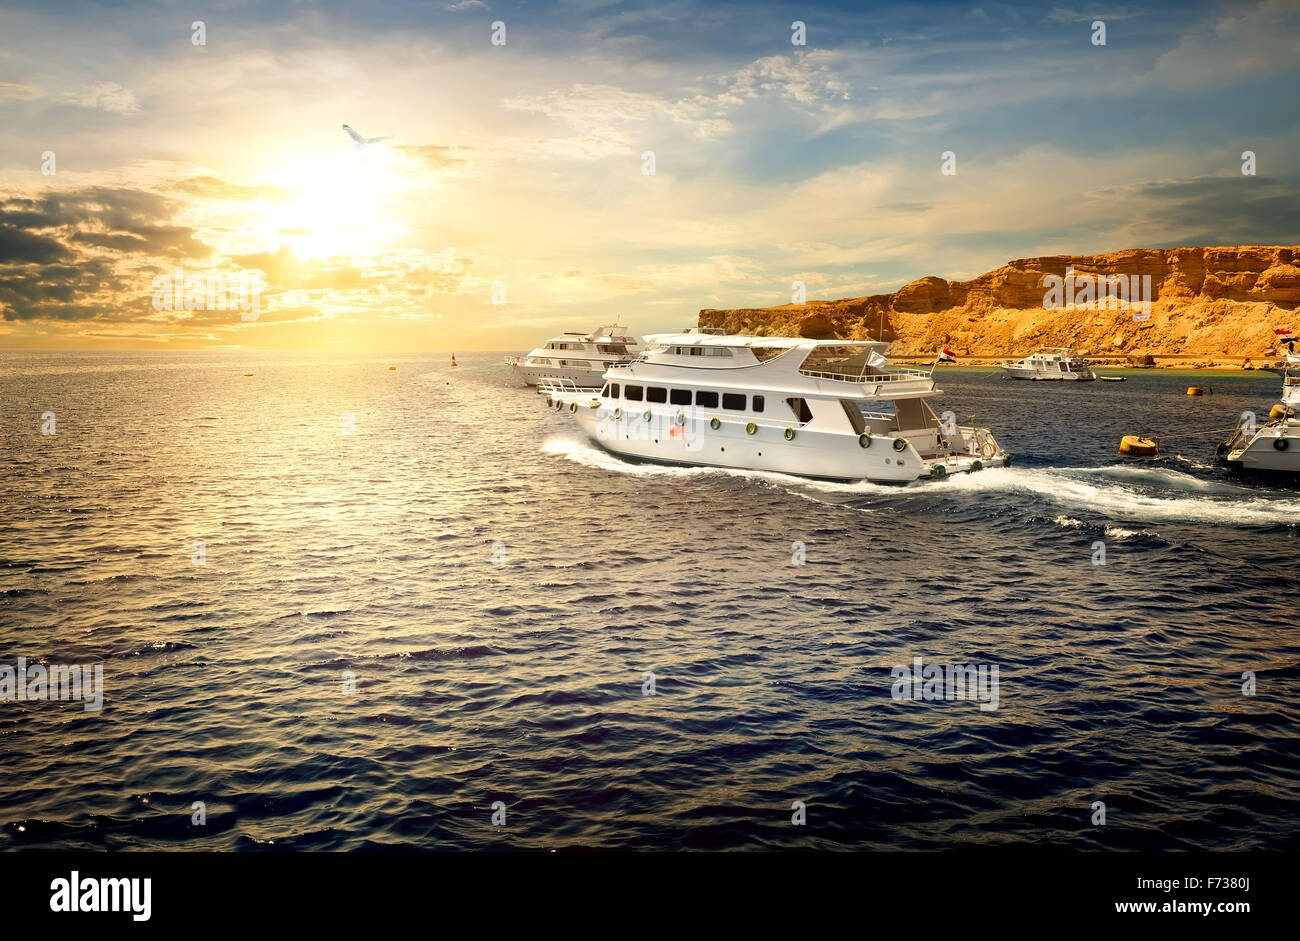 White yachts in Red sea at the sunset - Stock Image